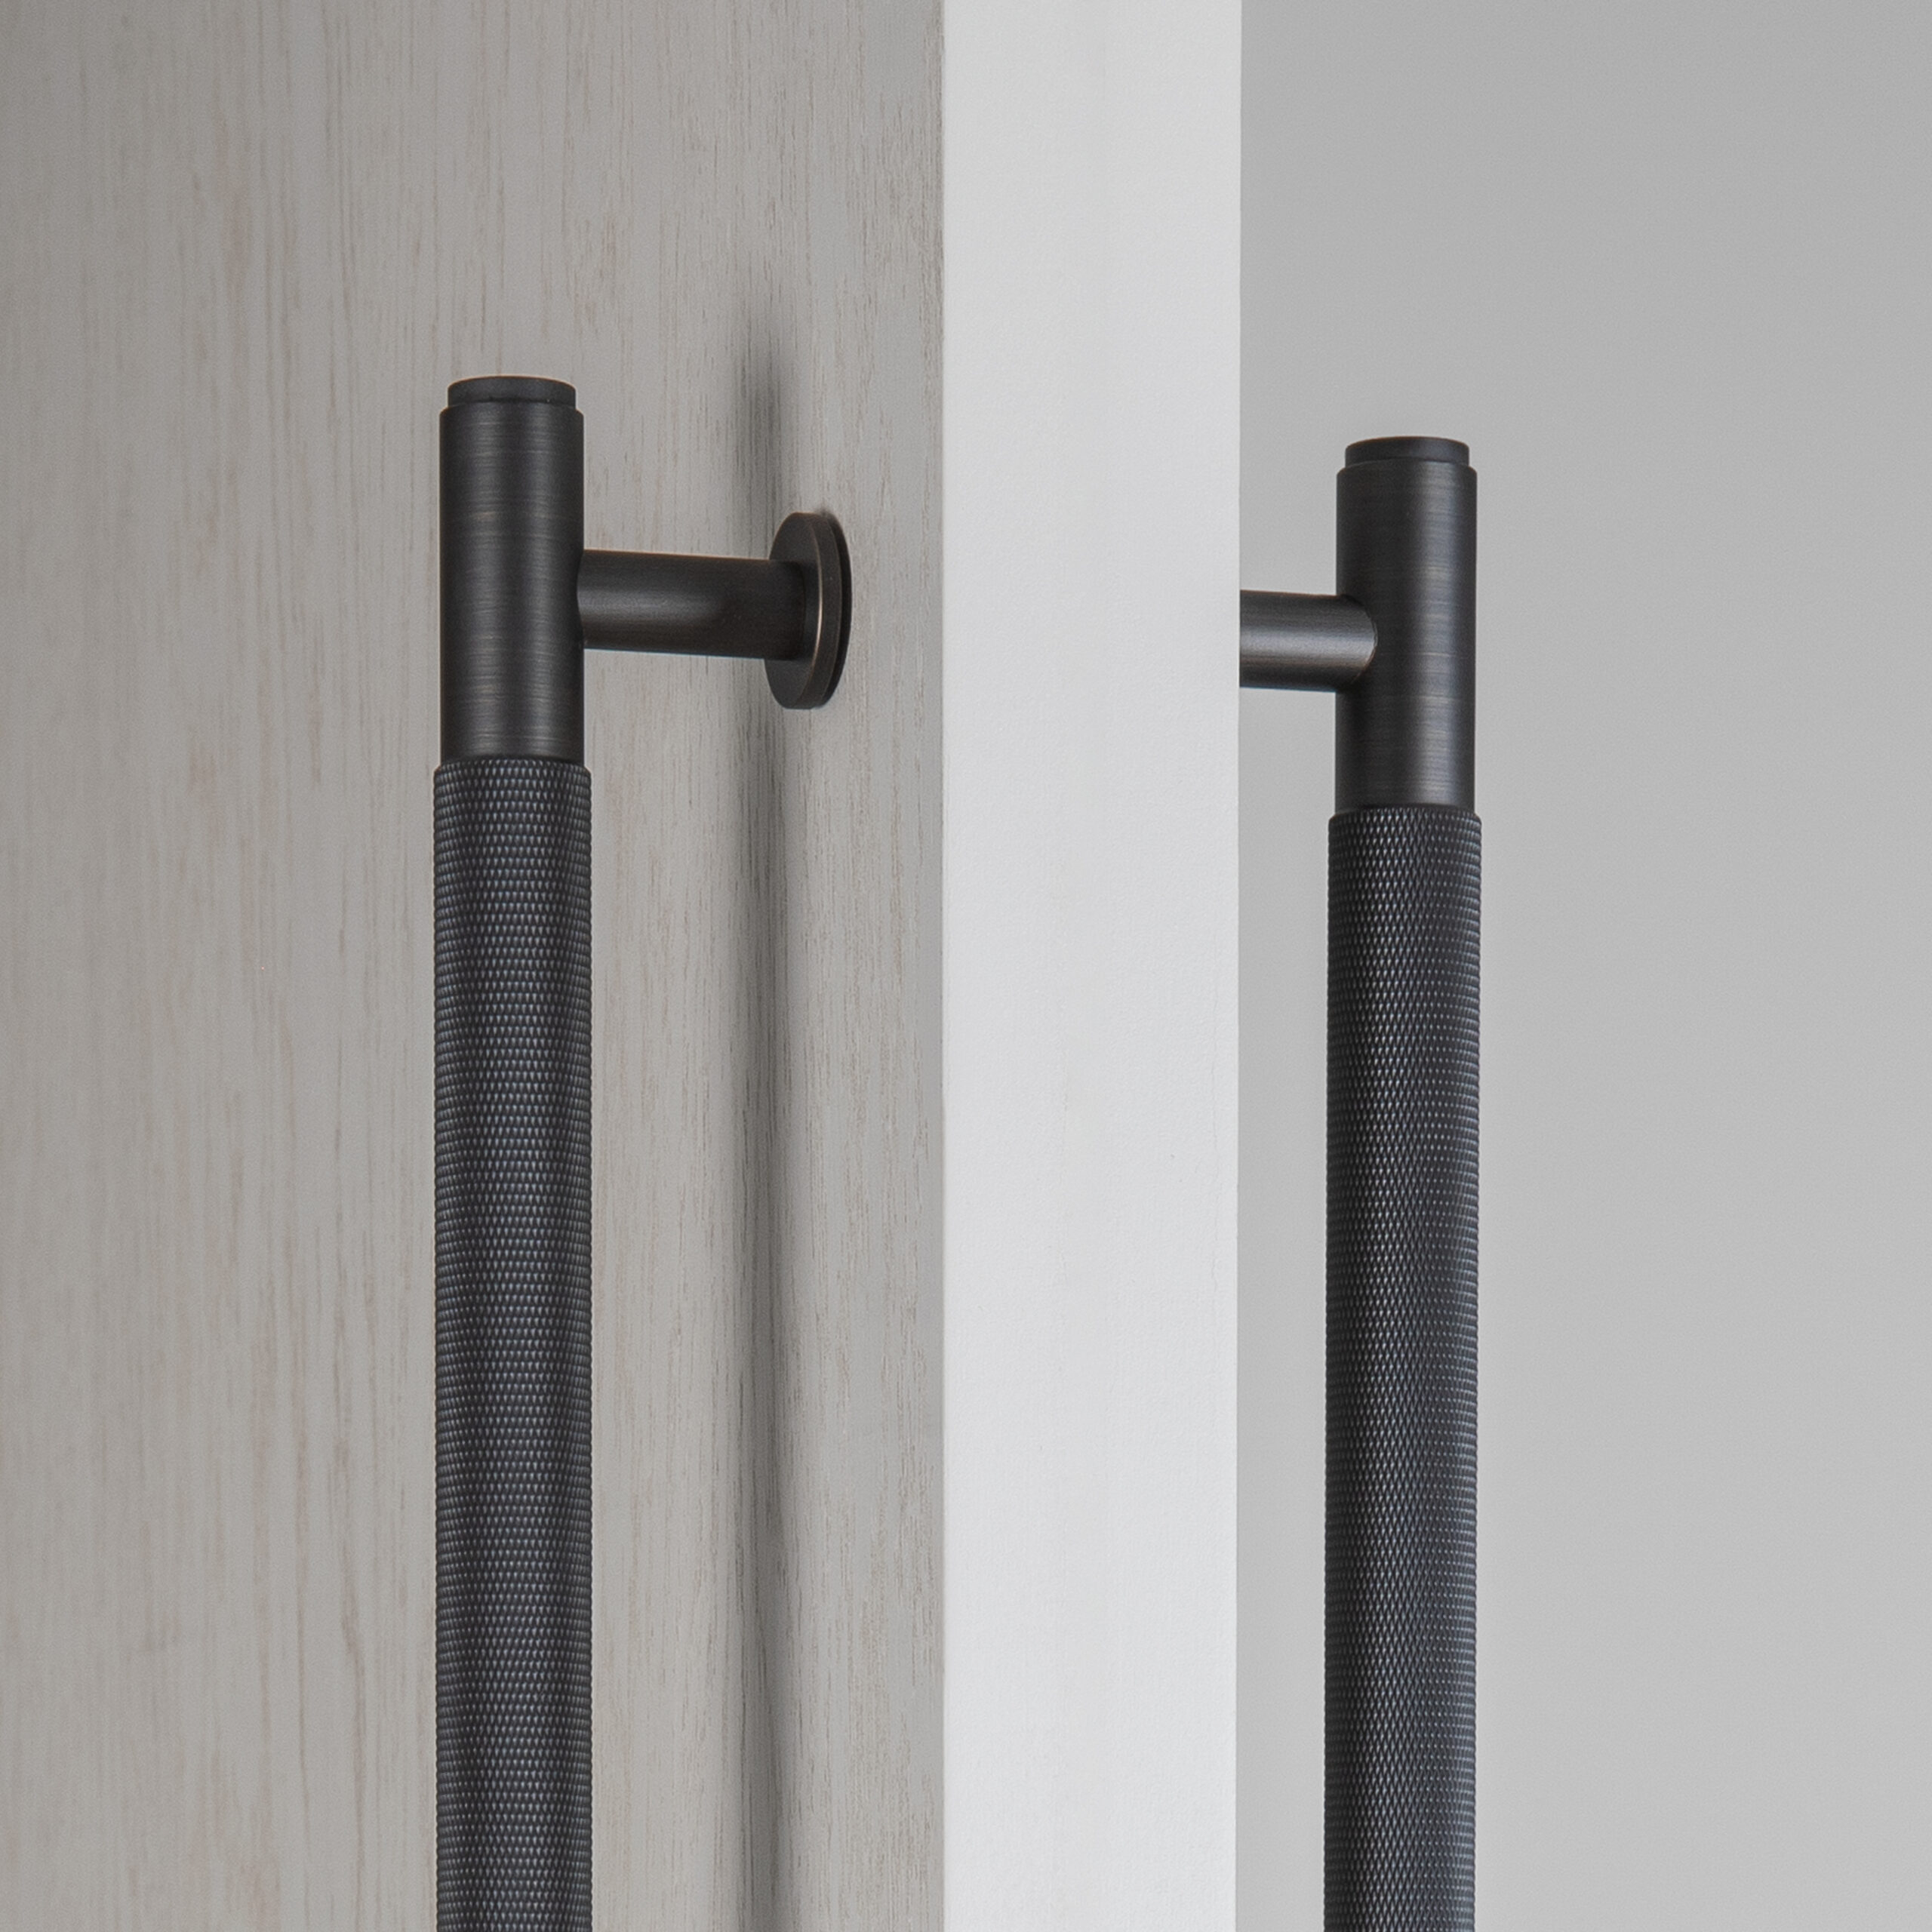 2.BP_Double_Sided_Pull_Bar_Smoked_Bronze